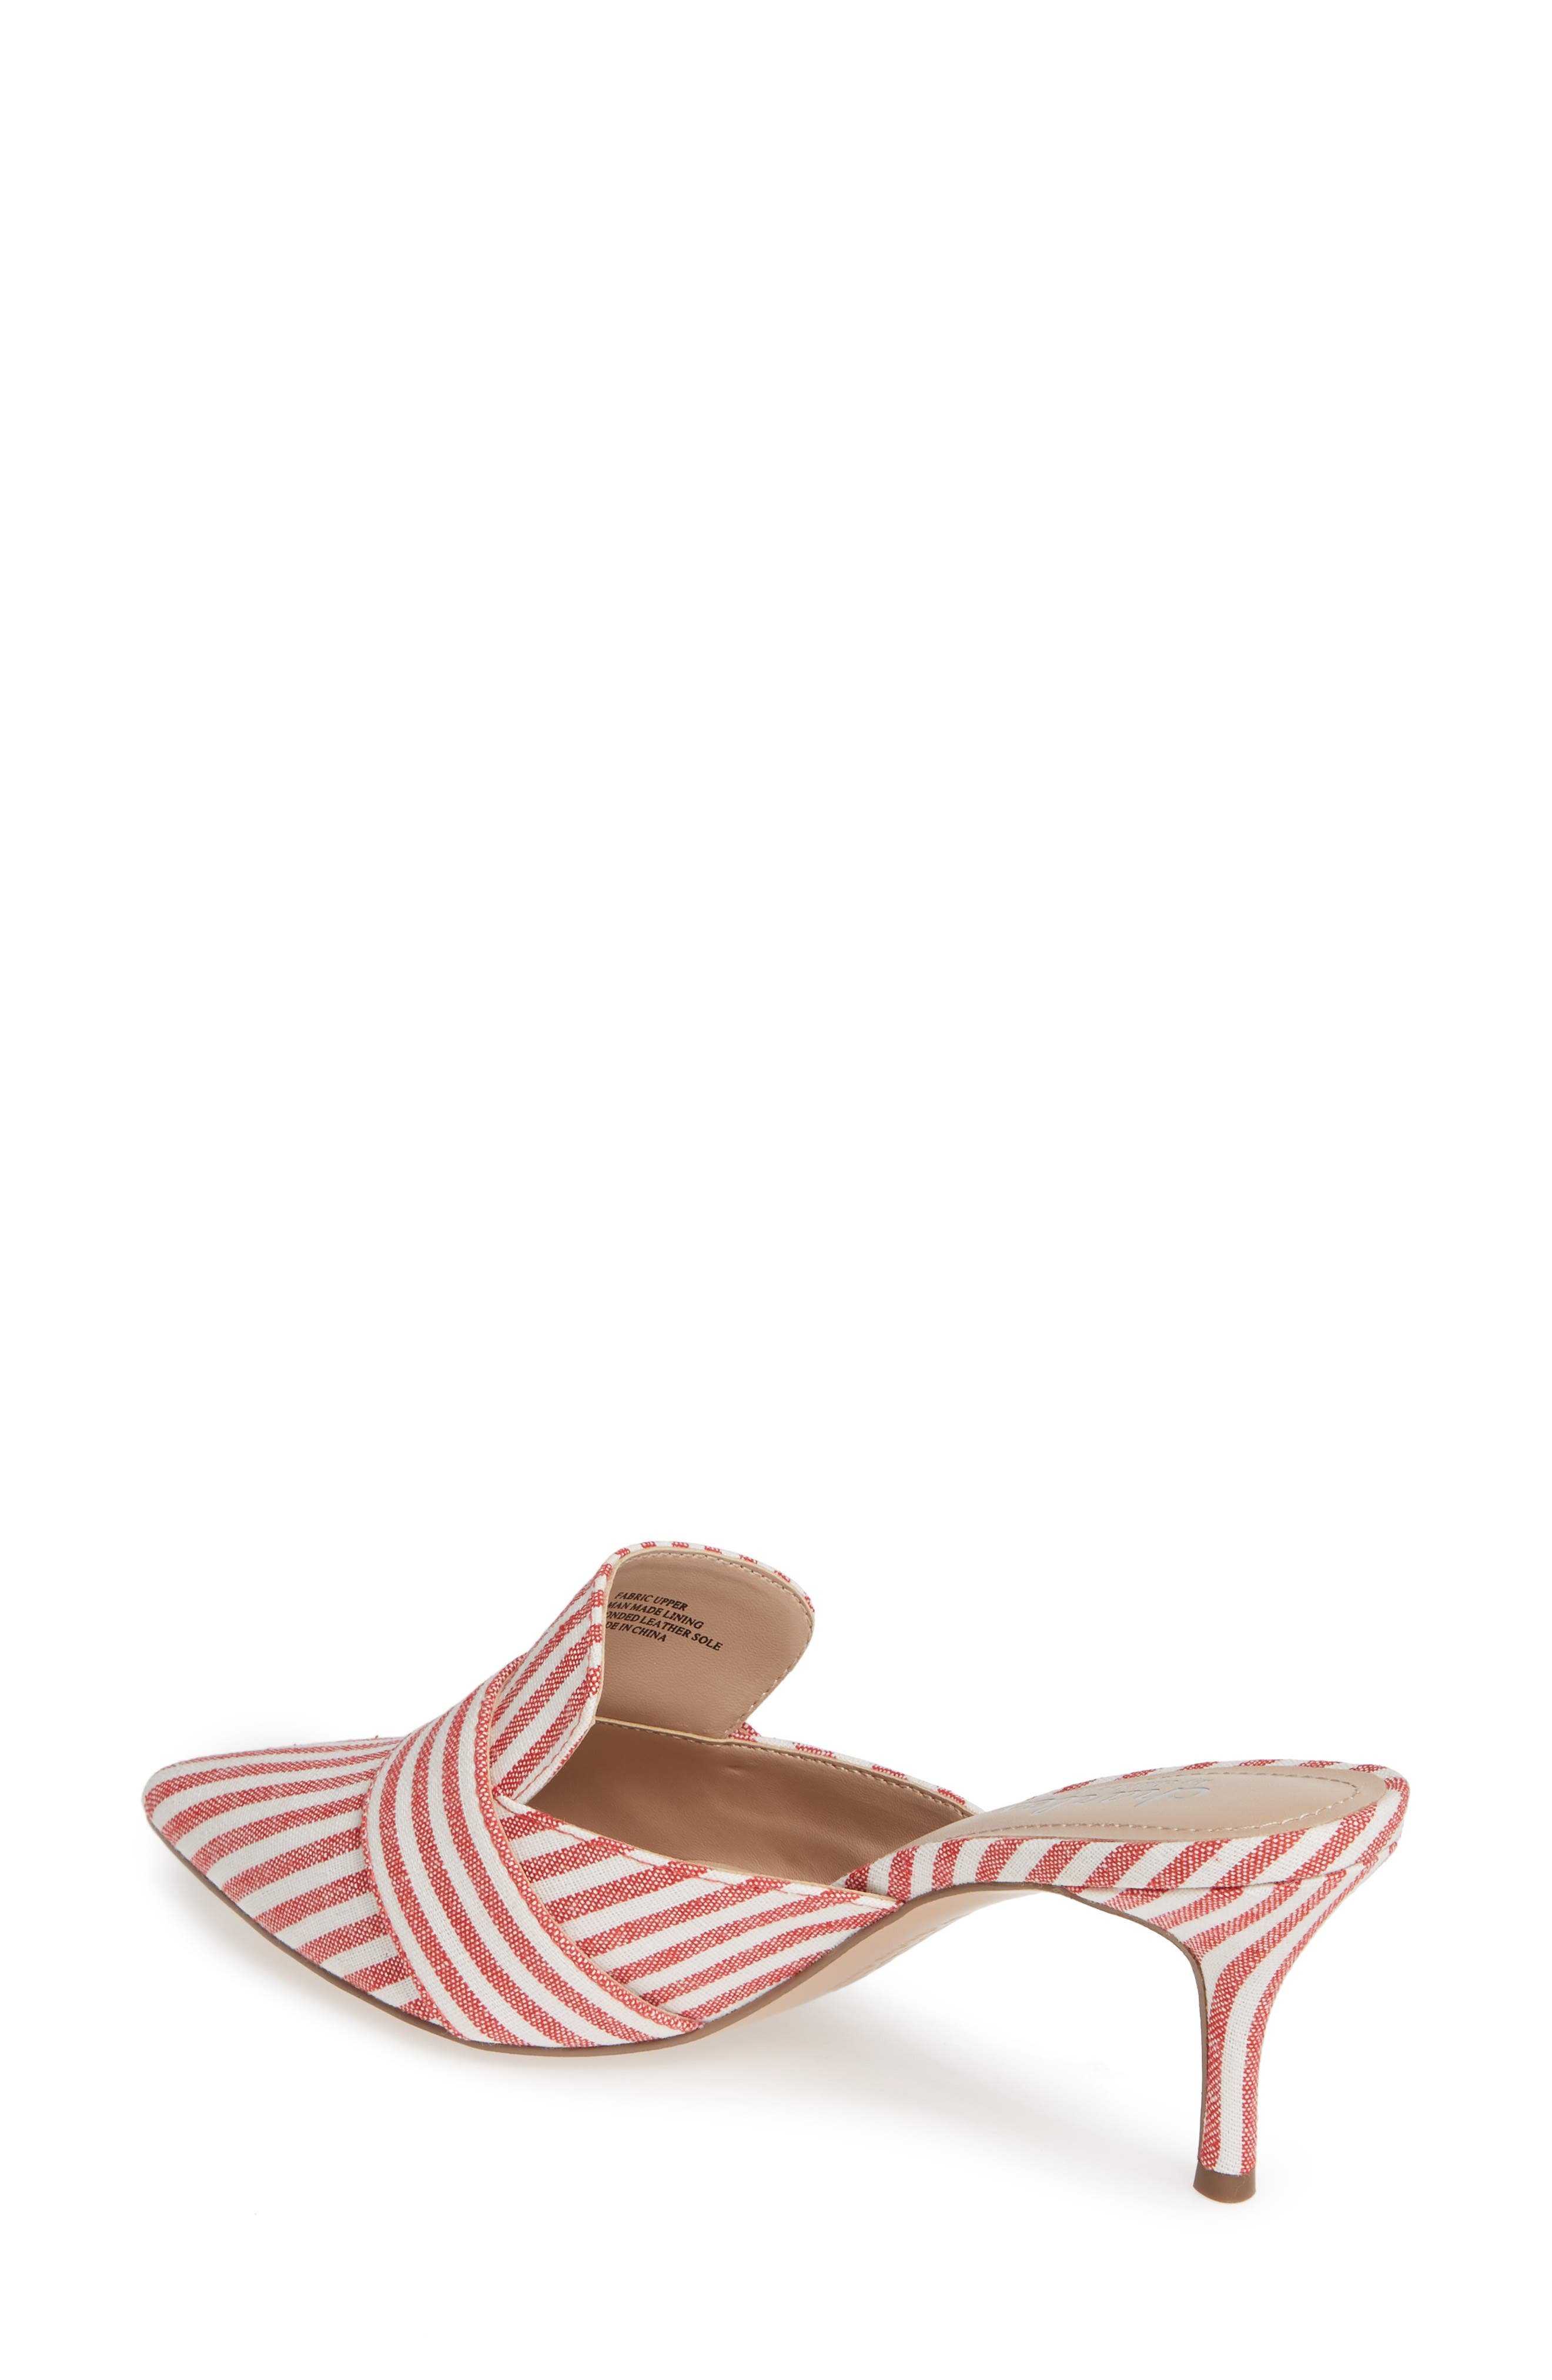 CHARLES BY CHARLES DAVID, Acapulco Mule, Alternate thumbnail 2, color, CANDY RED FABRIC